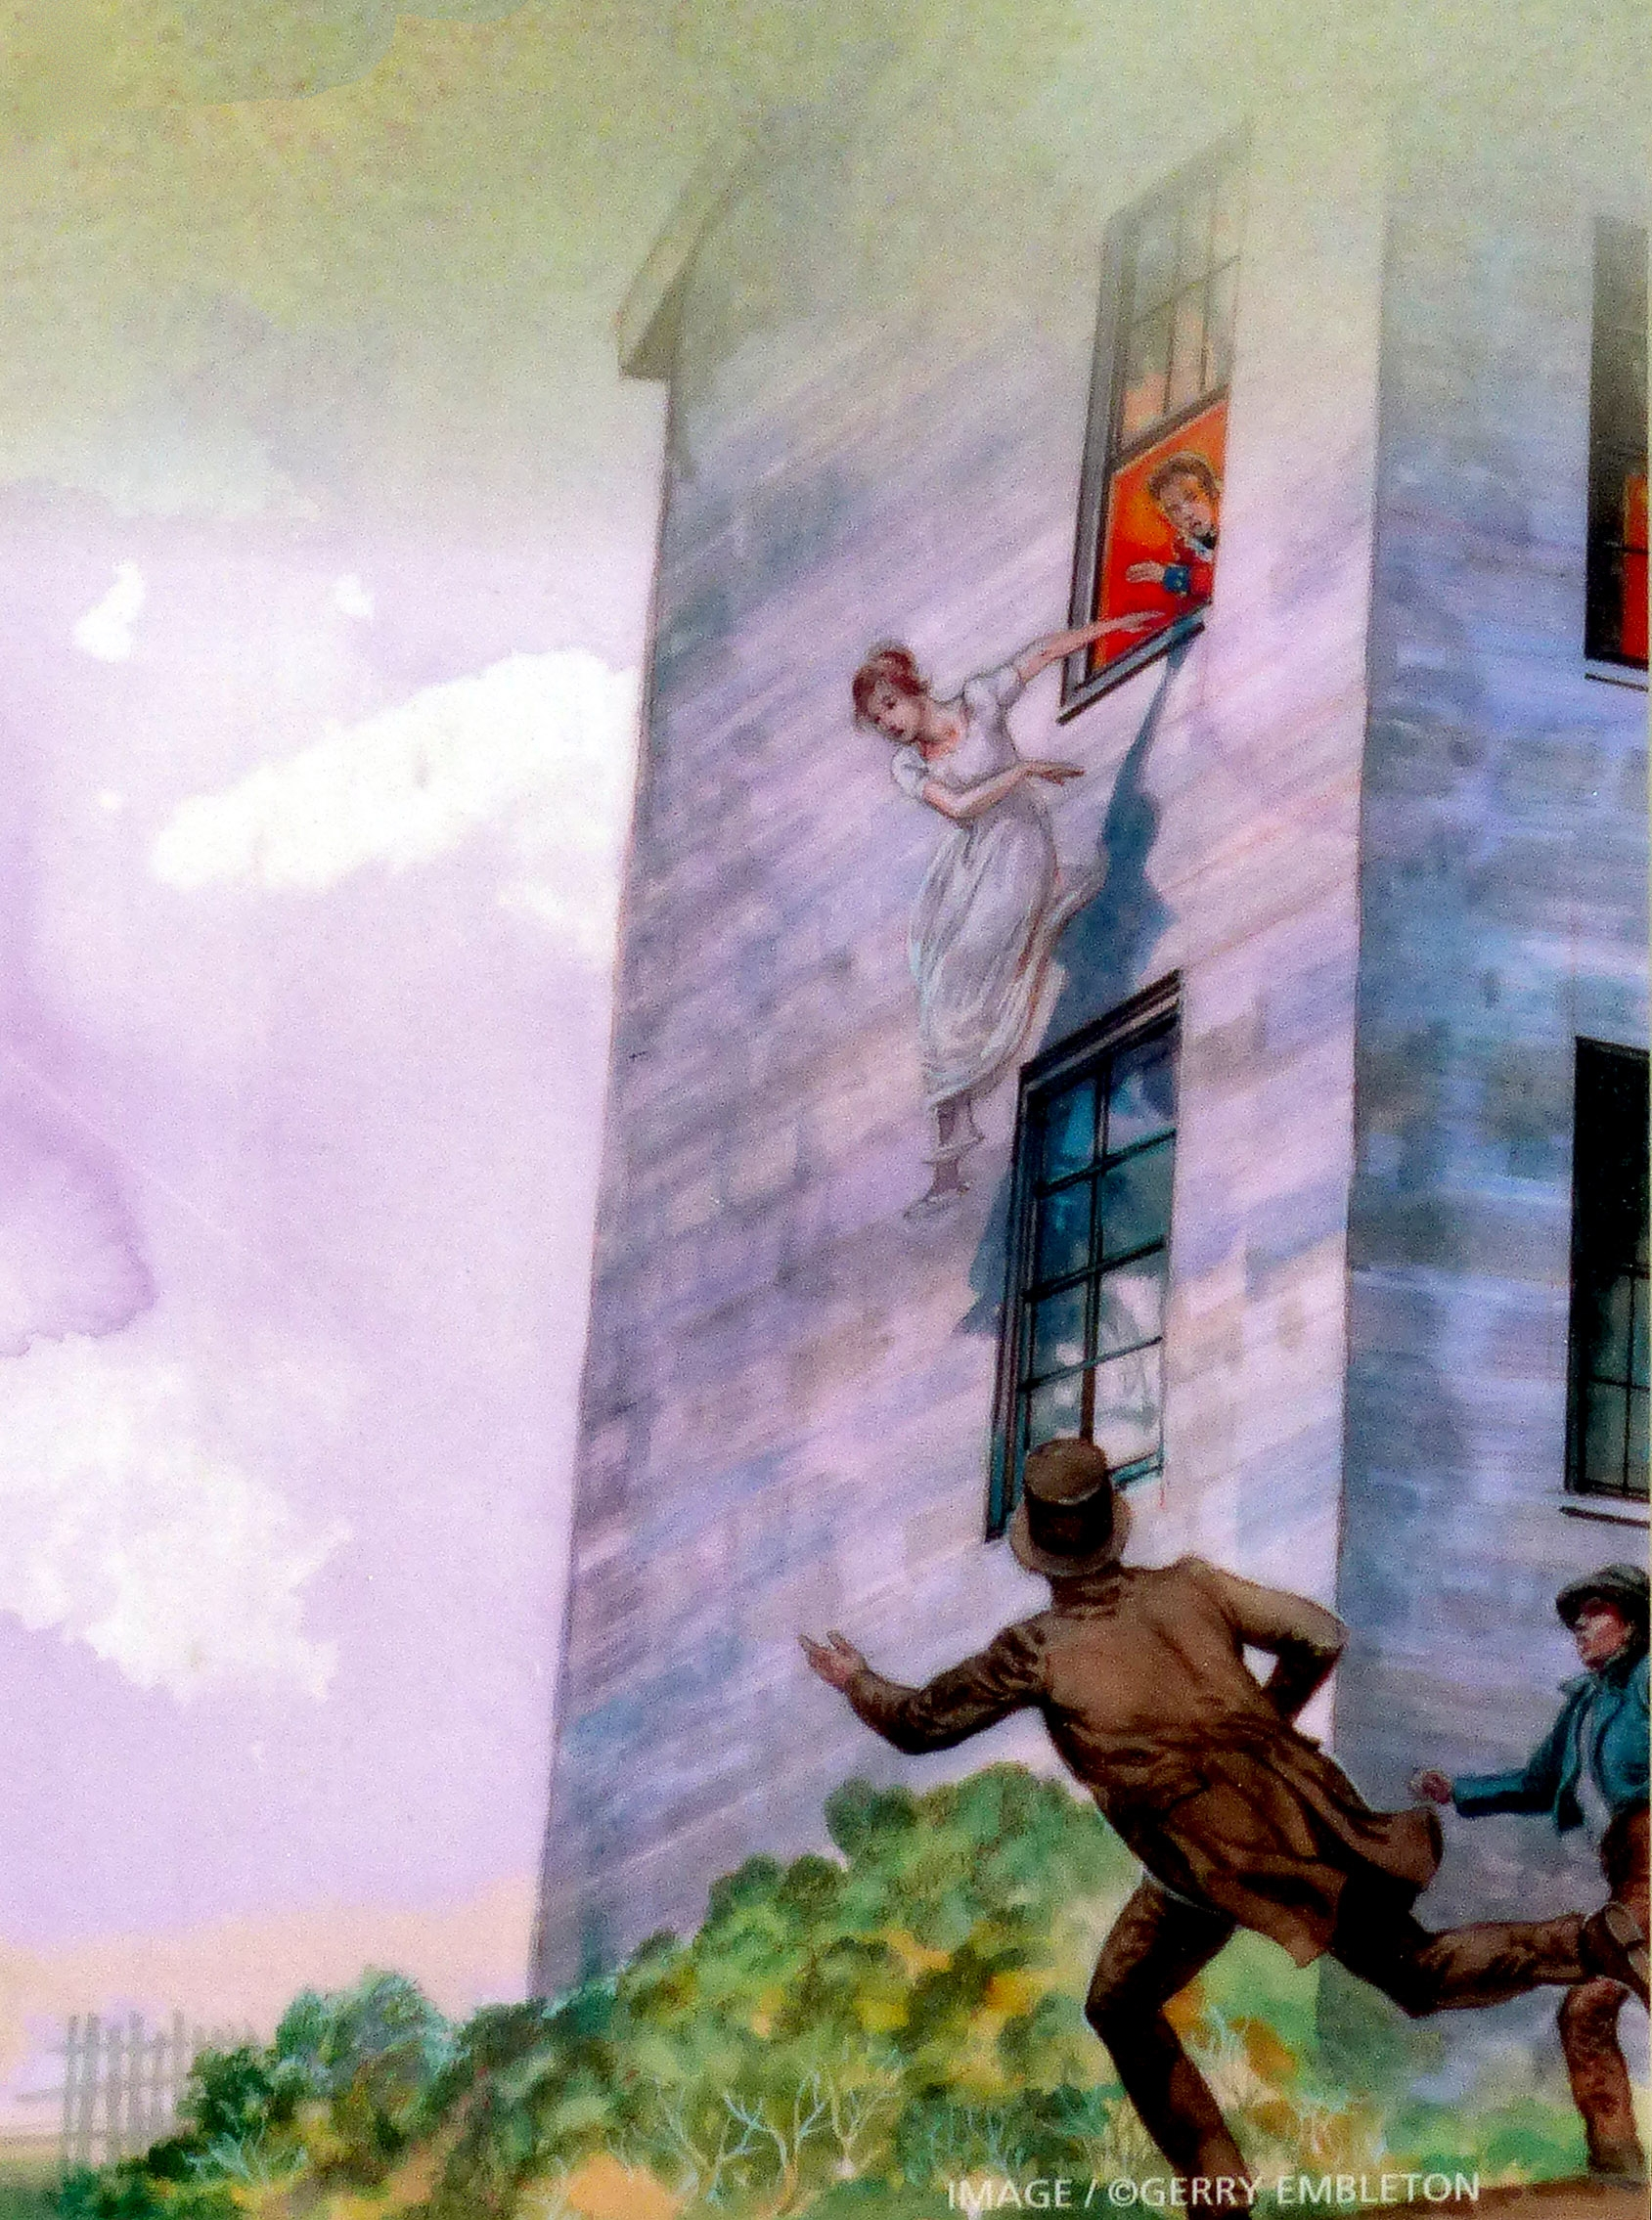 Eleanor Shaw leaps from Her Window<br>To Avoid an Unwanted British Advance